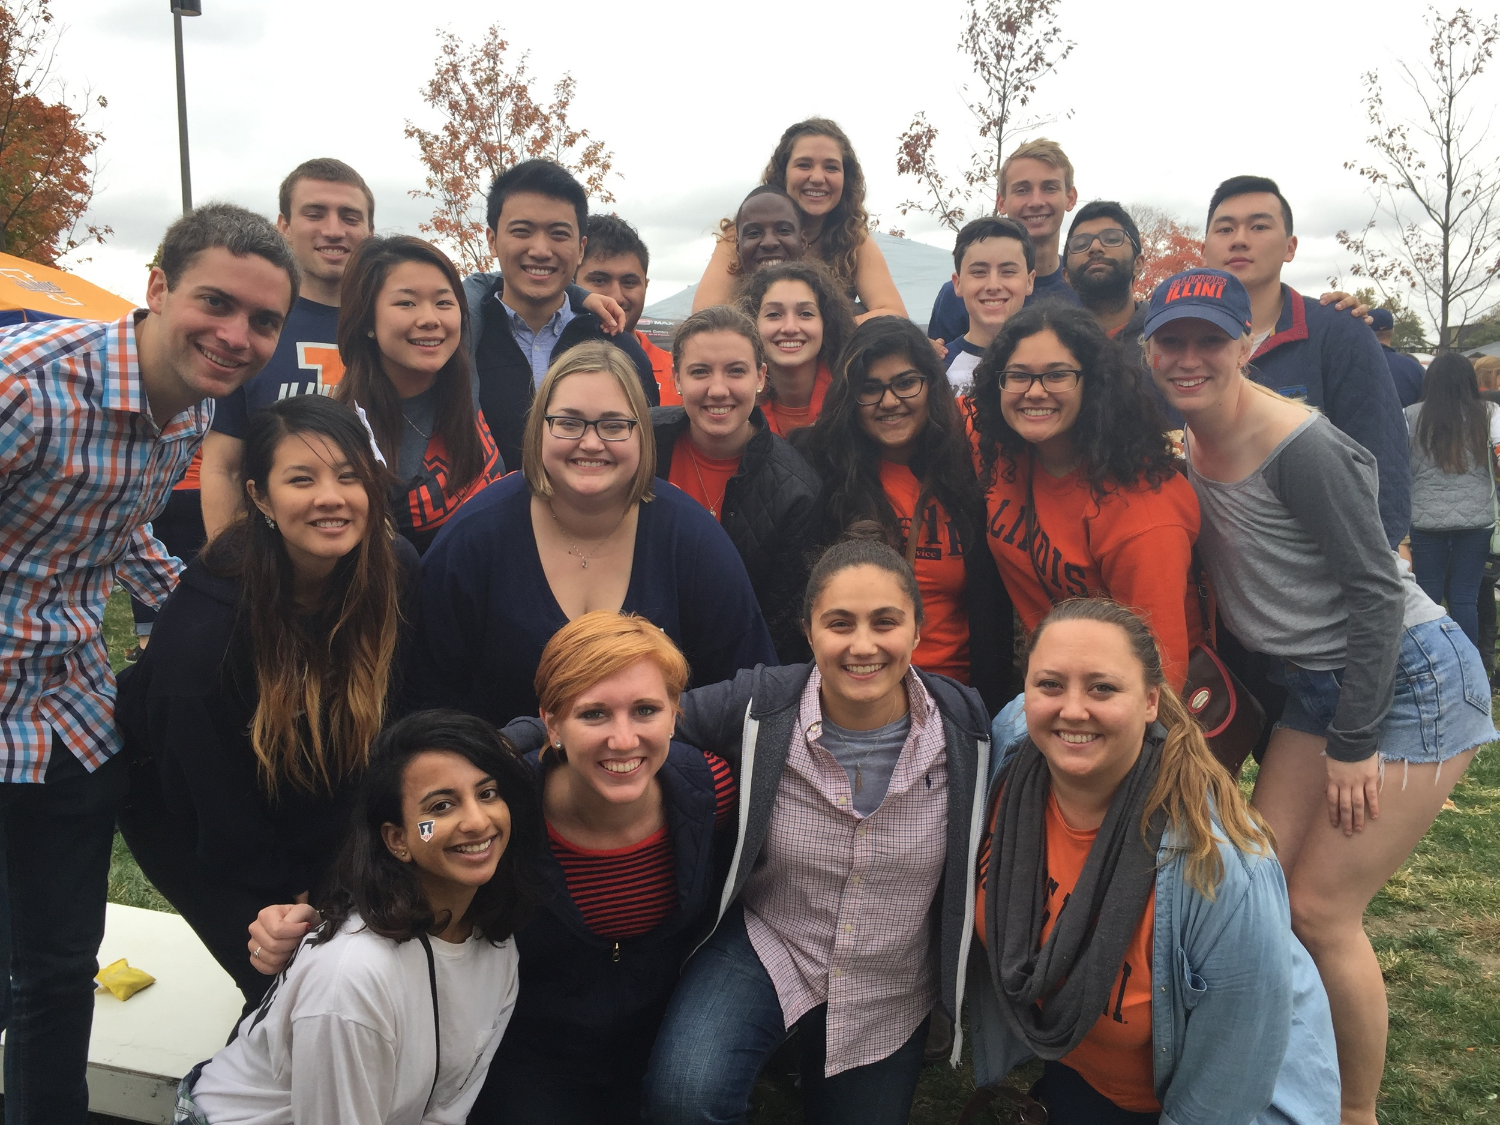 Alumni and current Enactus members joined together to celebrate Homecoming Weekend 2015